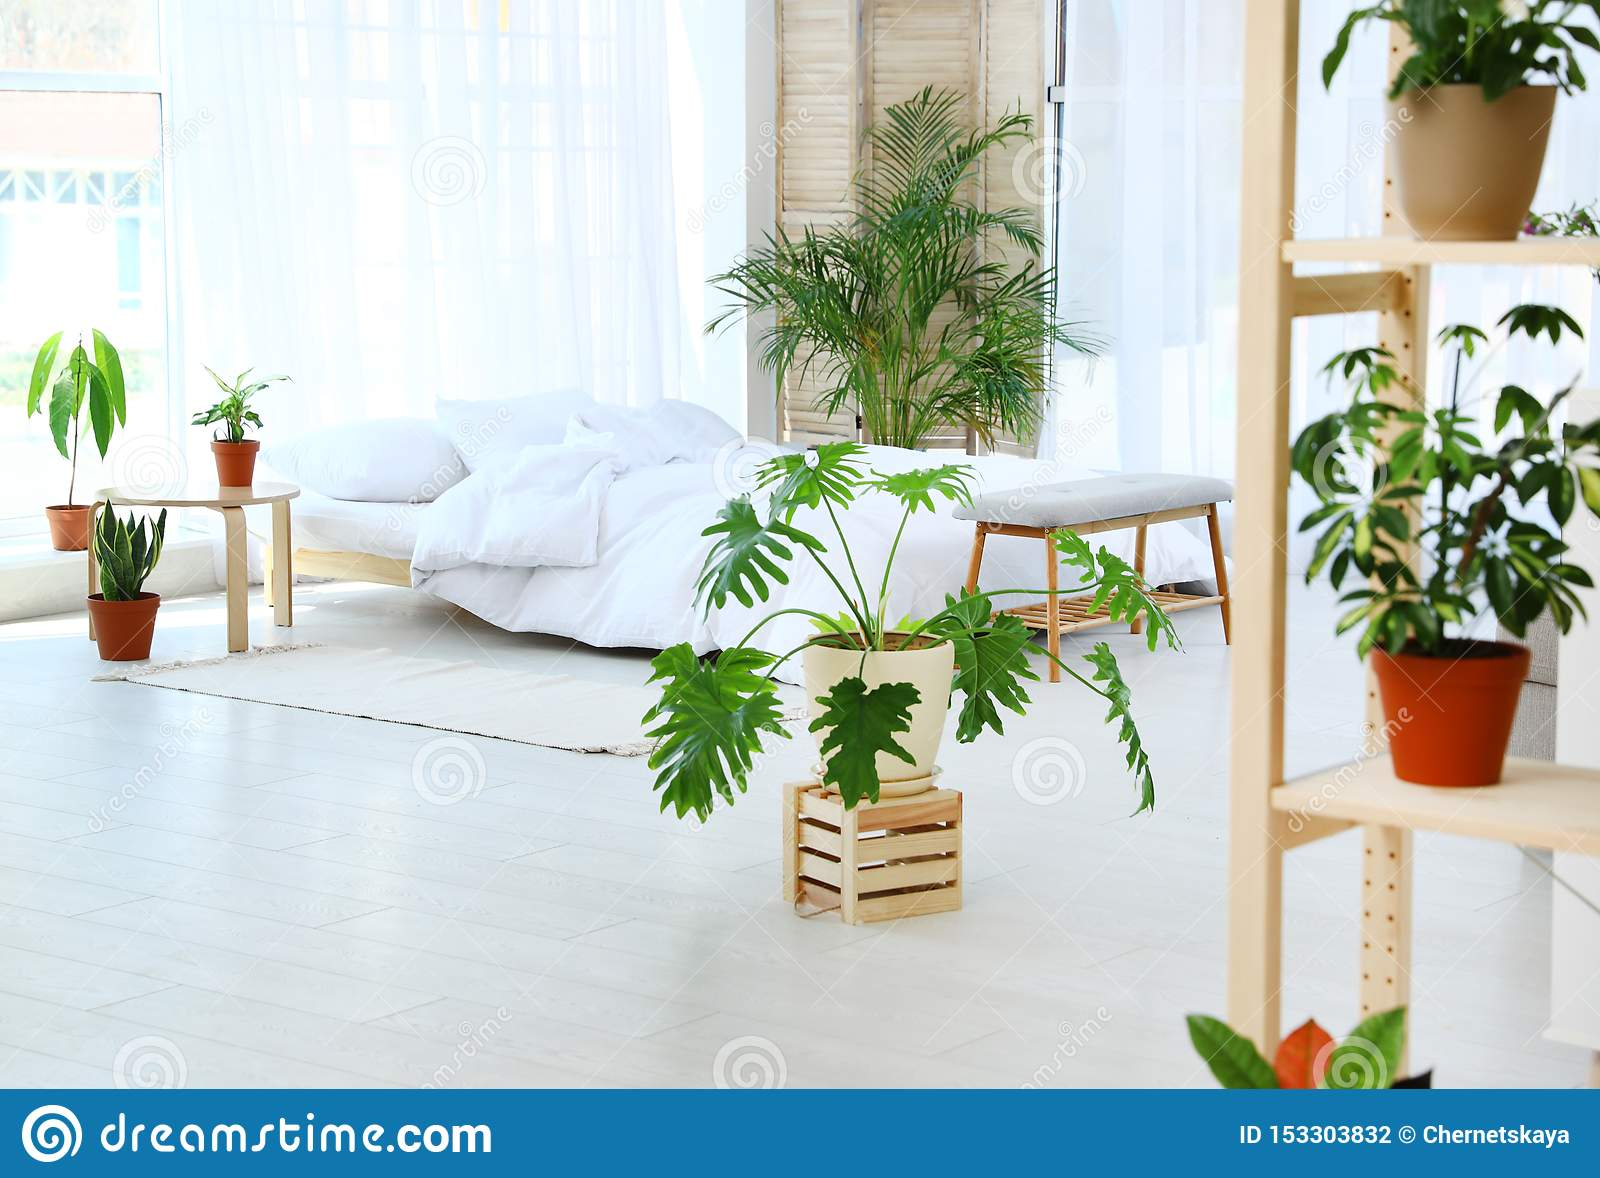 41 265 Indoor Plants Photos Free Royalty Free Stock Photos From Dreamstime